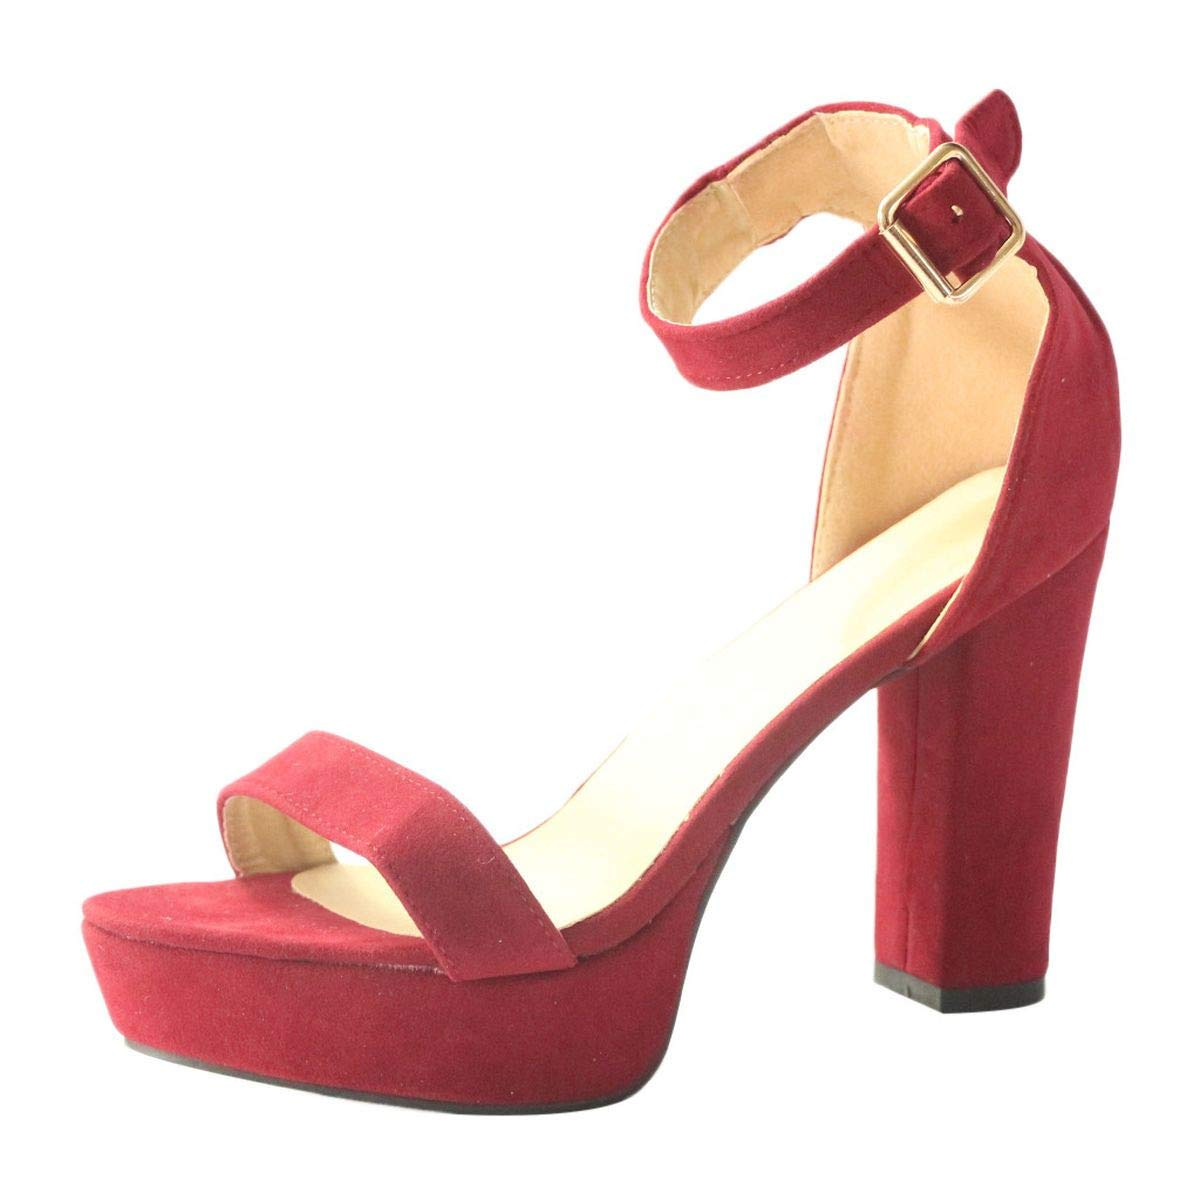 Women's Strappy Chunky Block Sandals Ankle Strap Open Toe Platform High Heel for Dress Party Evening Office Shoes Sandals (Red, 7)